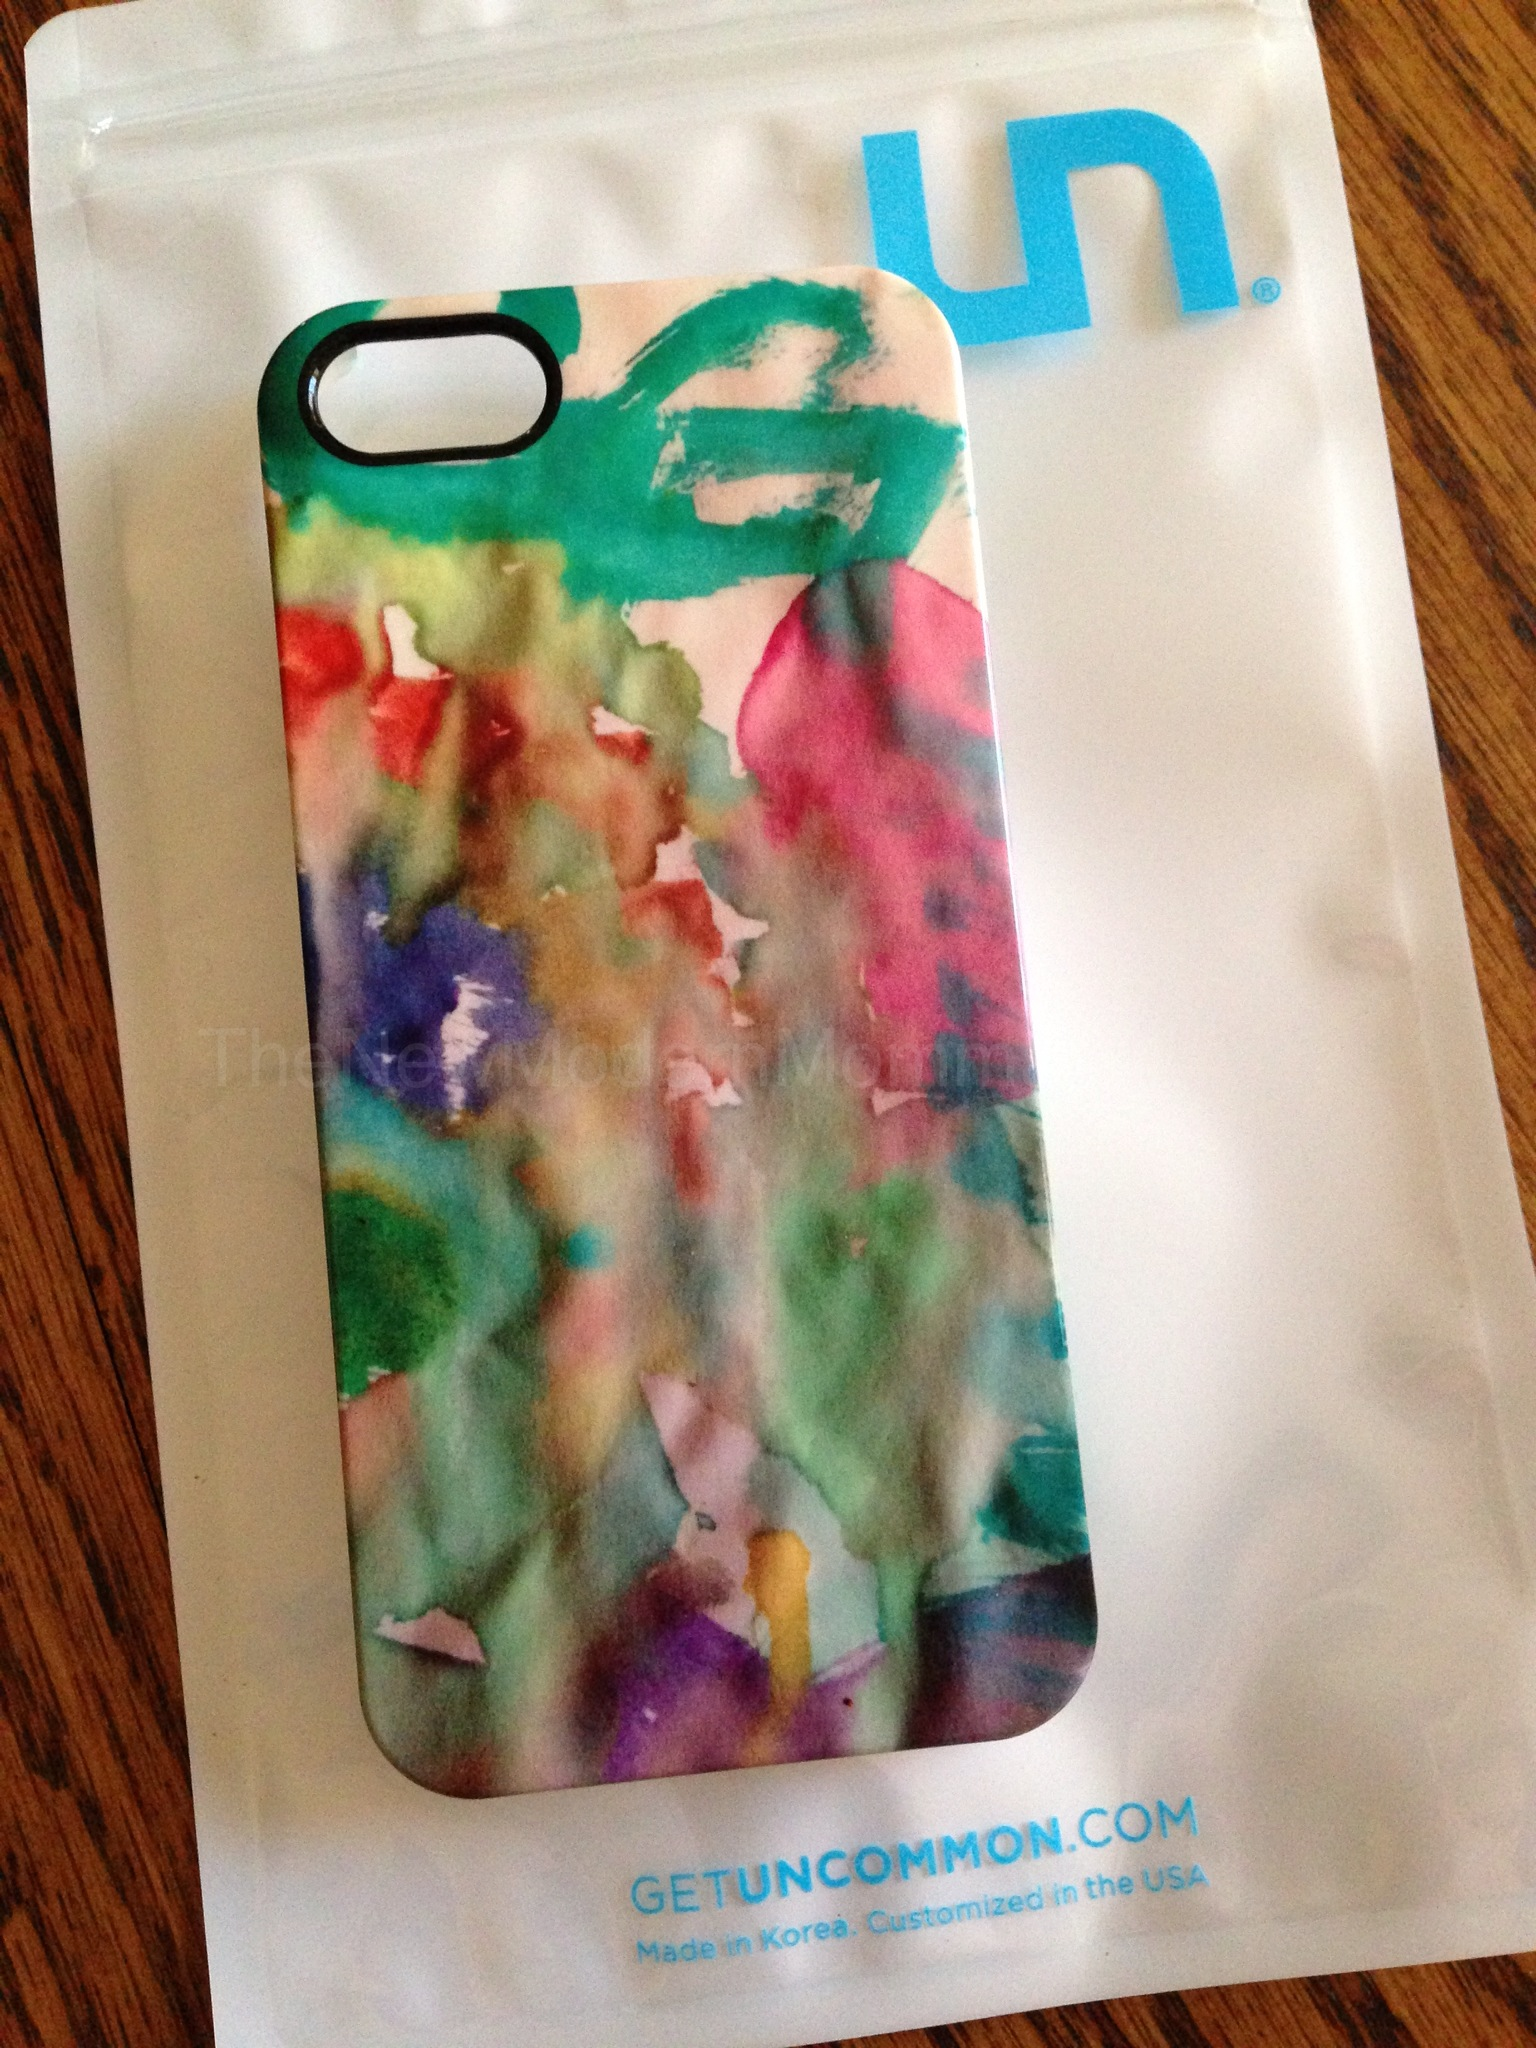 Perfect Mother s Day Gift for the iPhone Mom! - The New Modern Momma eb0ca0674c73